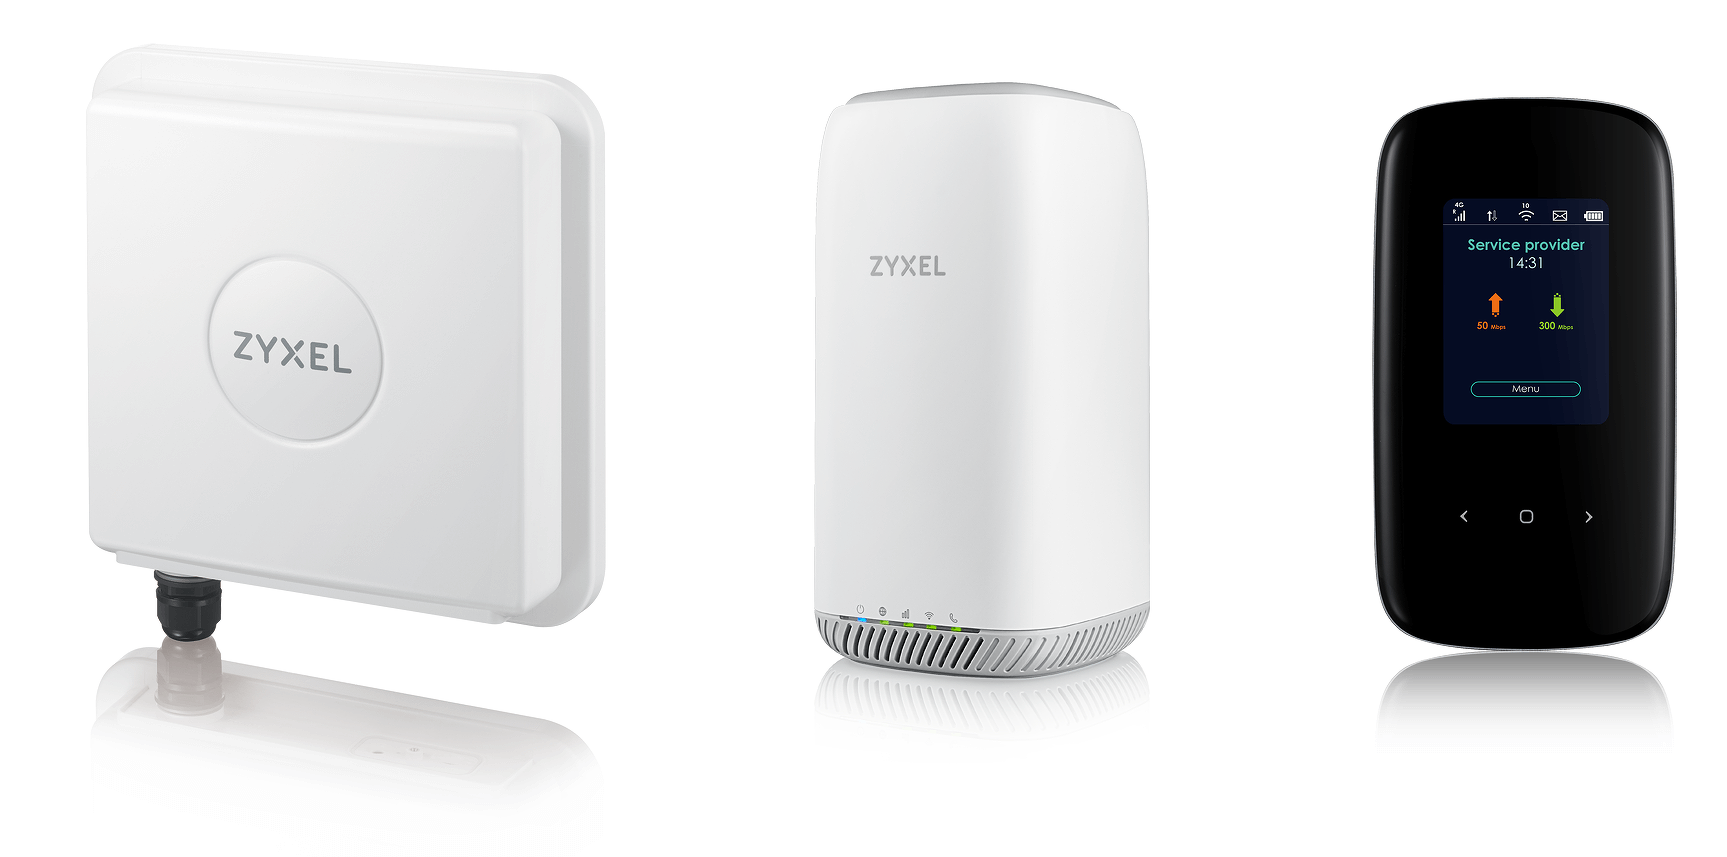 zyxelrouters.png